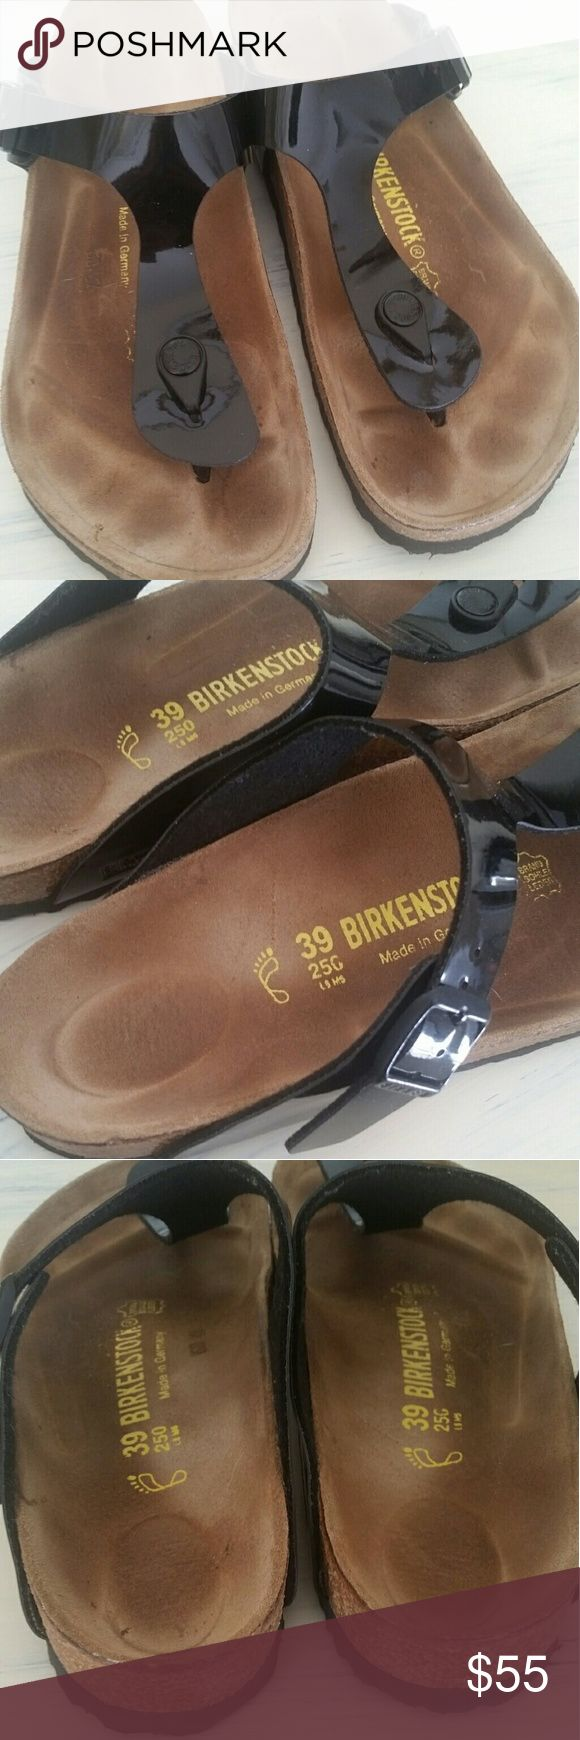 *sold*Patent leather gizeh birkenstocks Euc! Light staining on footbed but otherwise in like new condition.  These are the gizeh and in a patent leather. Any questions please ask.  I don't have original box. These are a 39 and I believe by birkenstock it's a size 8. I'm an 8.5/9 and these fit me great. These are also a regular not narrow. Please no offers, my price is absolutely fair. Item is cross posted. Birkenstock Shoes Sandals